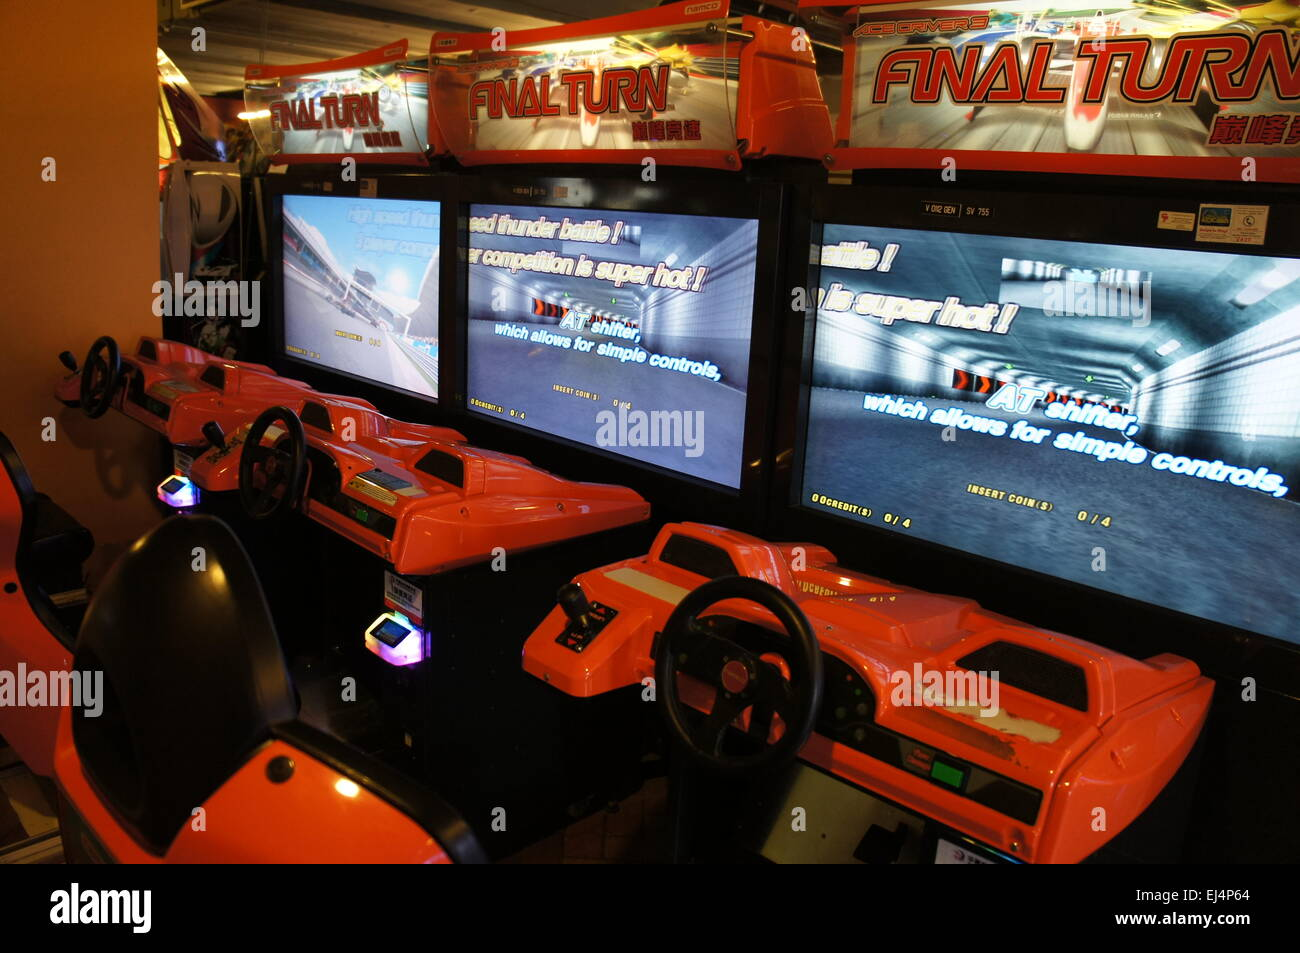 Arcade Game Stock Photos & Arcade Game Stock Images - Alamy